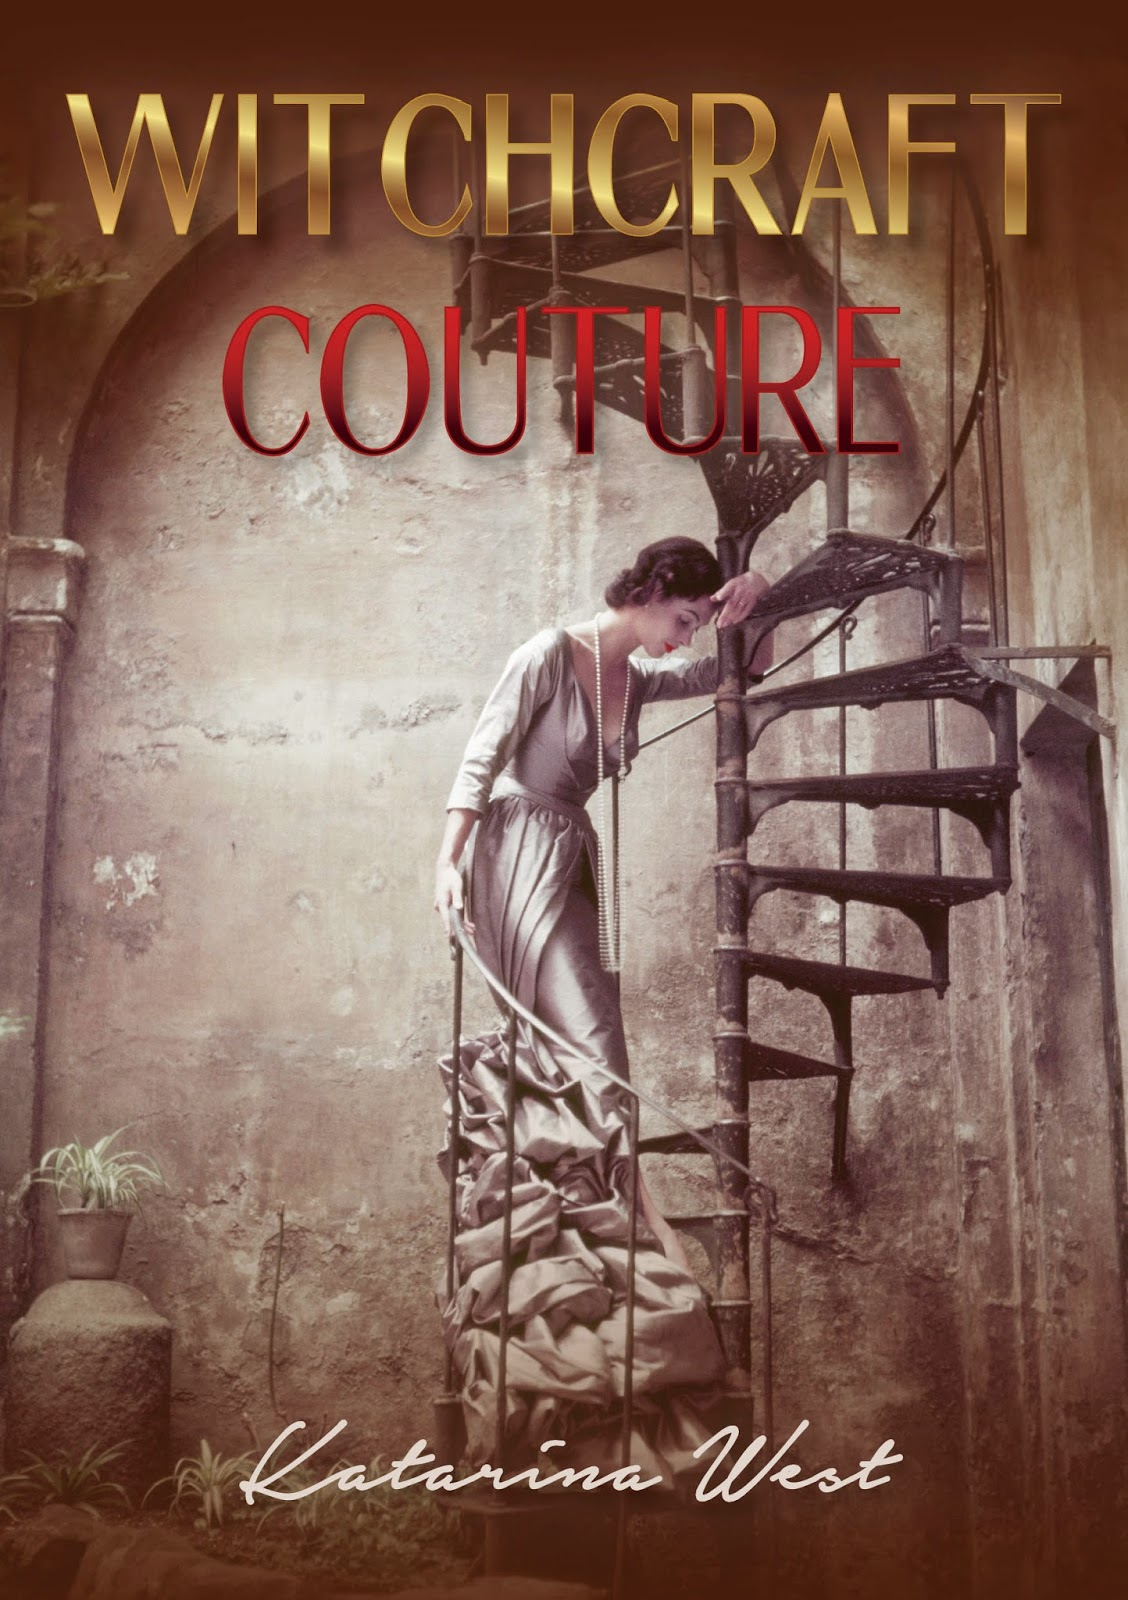 Witchcraft Couture by Katarina West